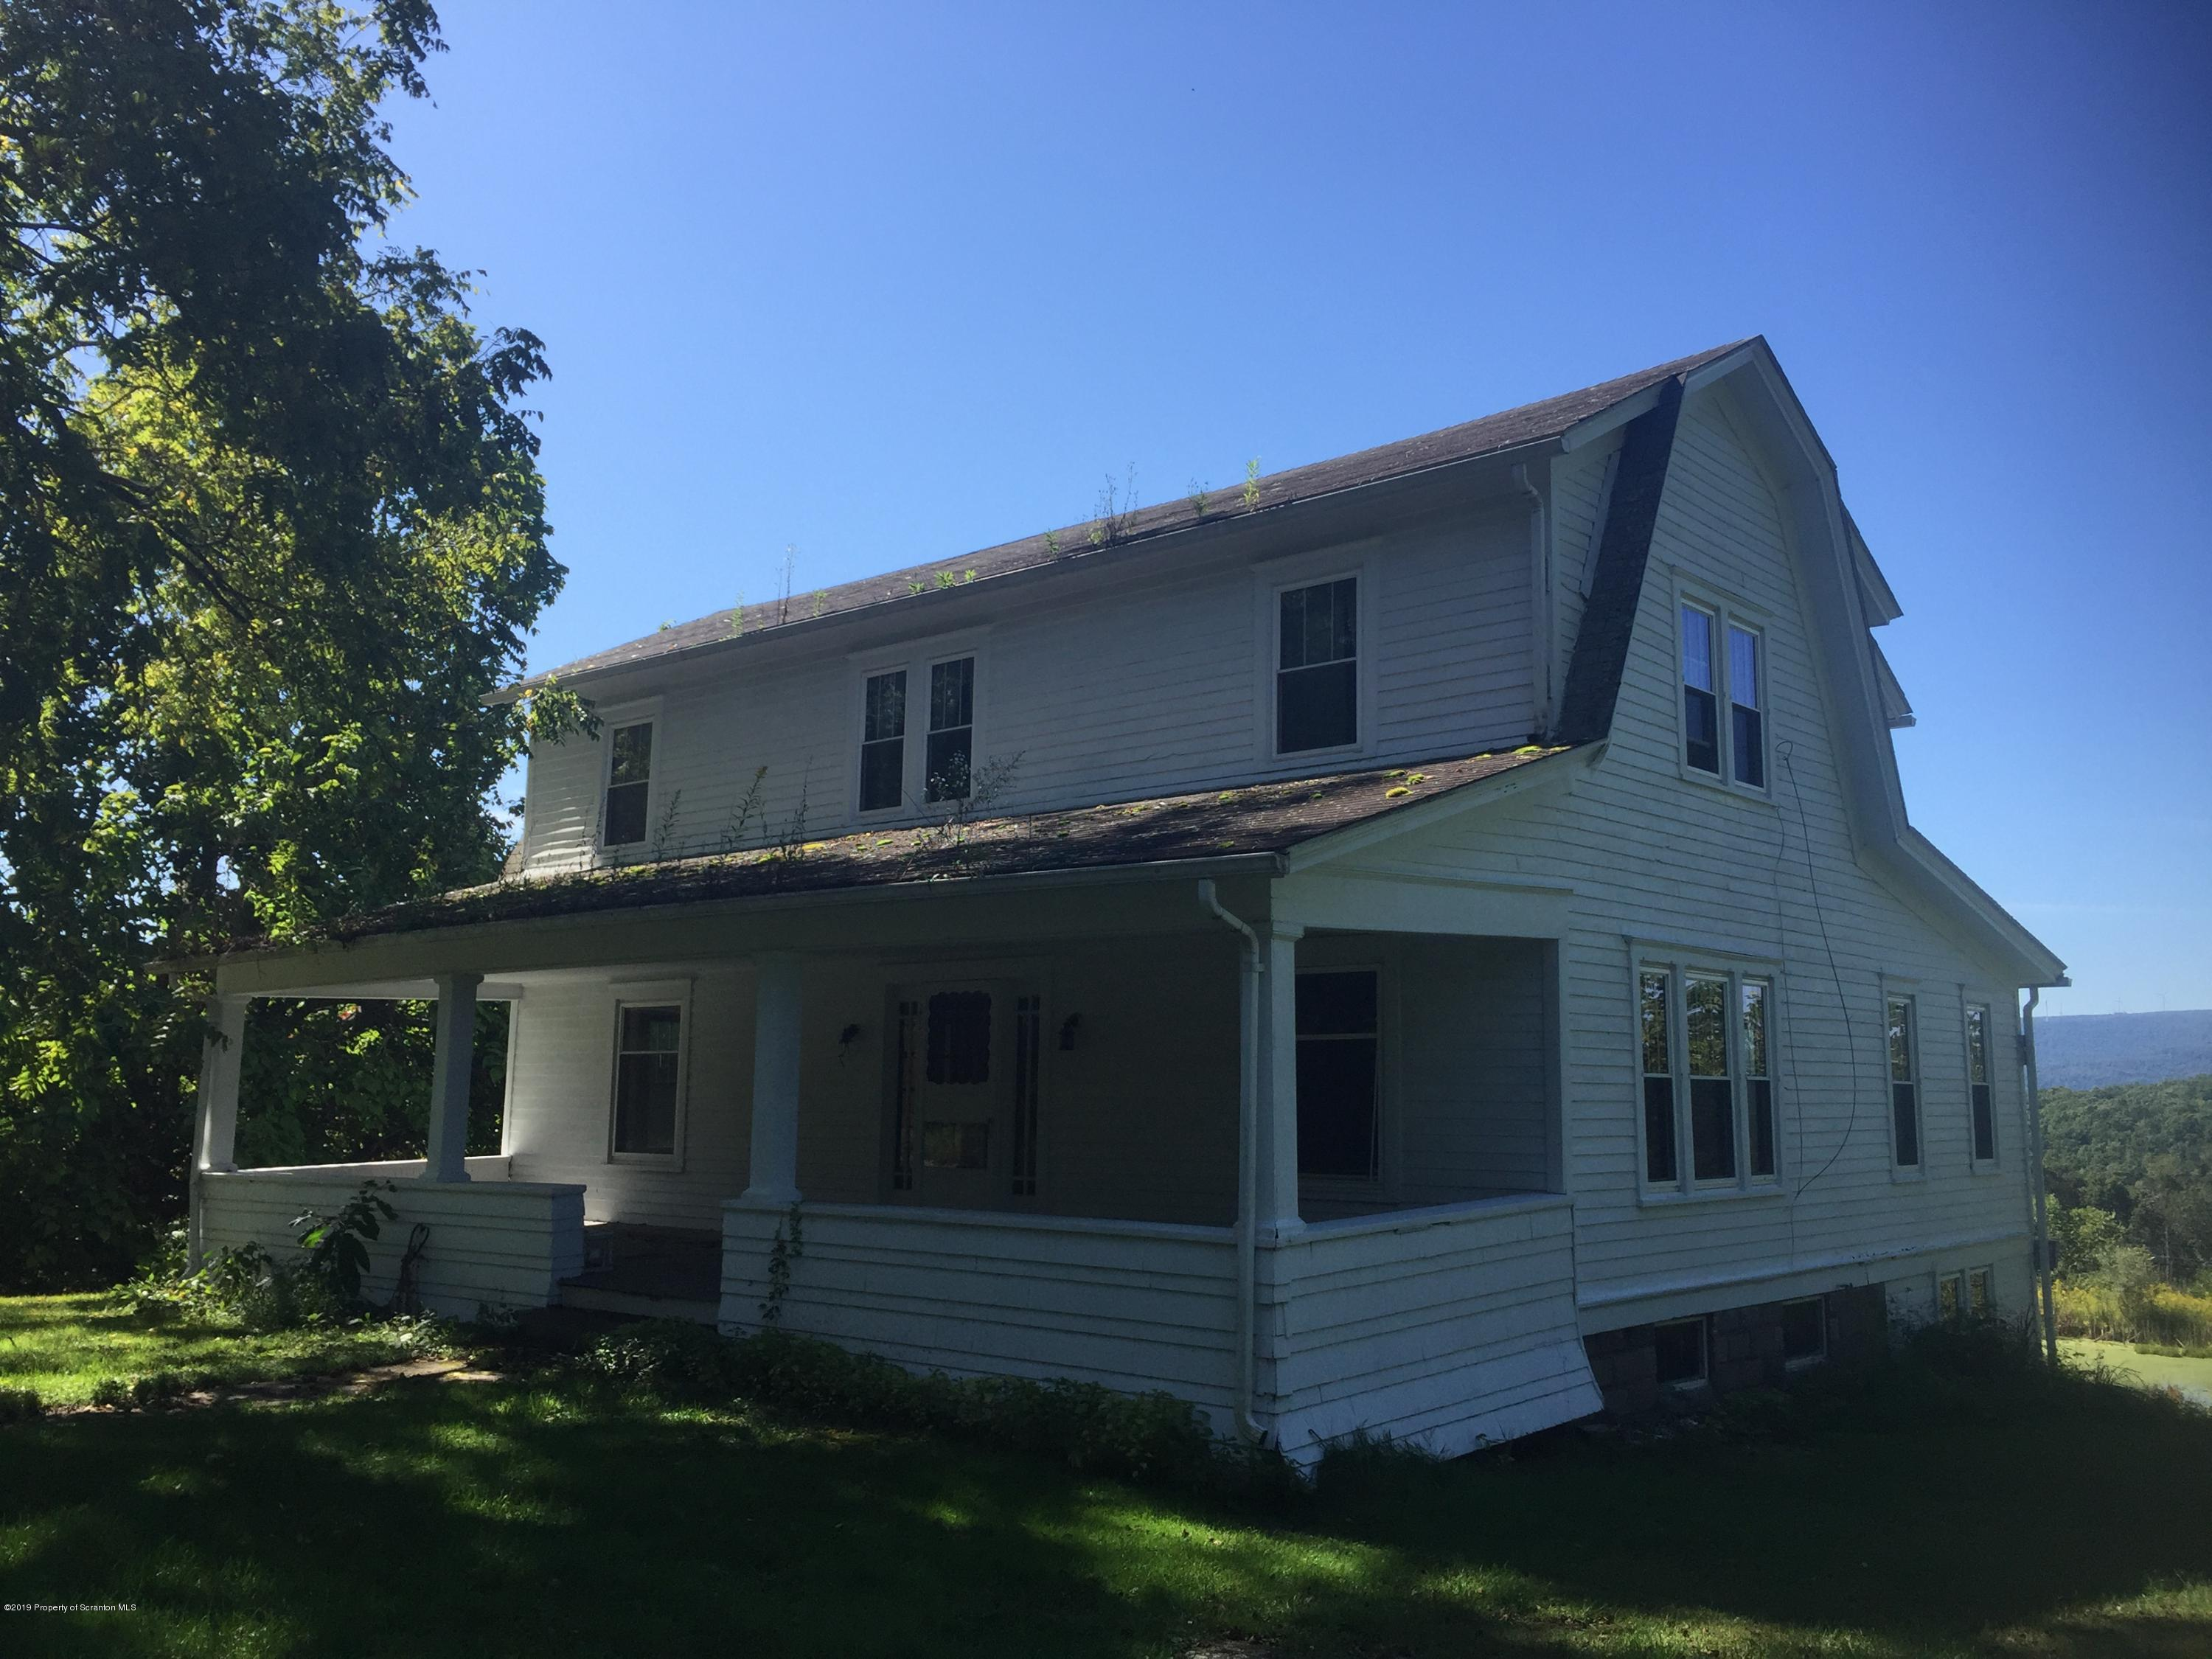 151 Dark Hollow Rd, Tunkhannock, Pennsylvania 18657, 3 Bedrooms Bedrooms, 7 Rooms Rooms,2 BathroomsBathrooms,Single Family,For Sale,Dark Hollow,19-4506